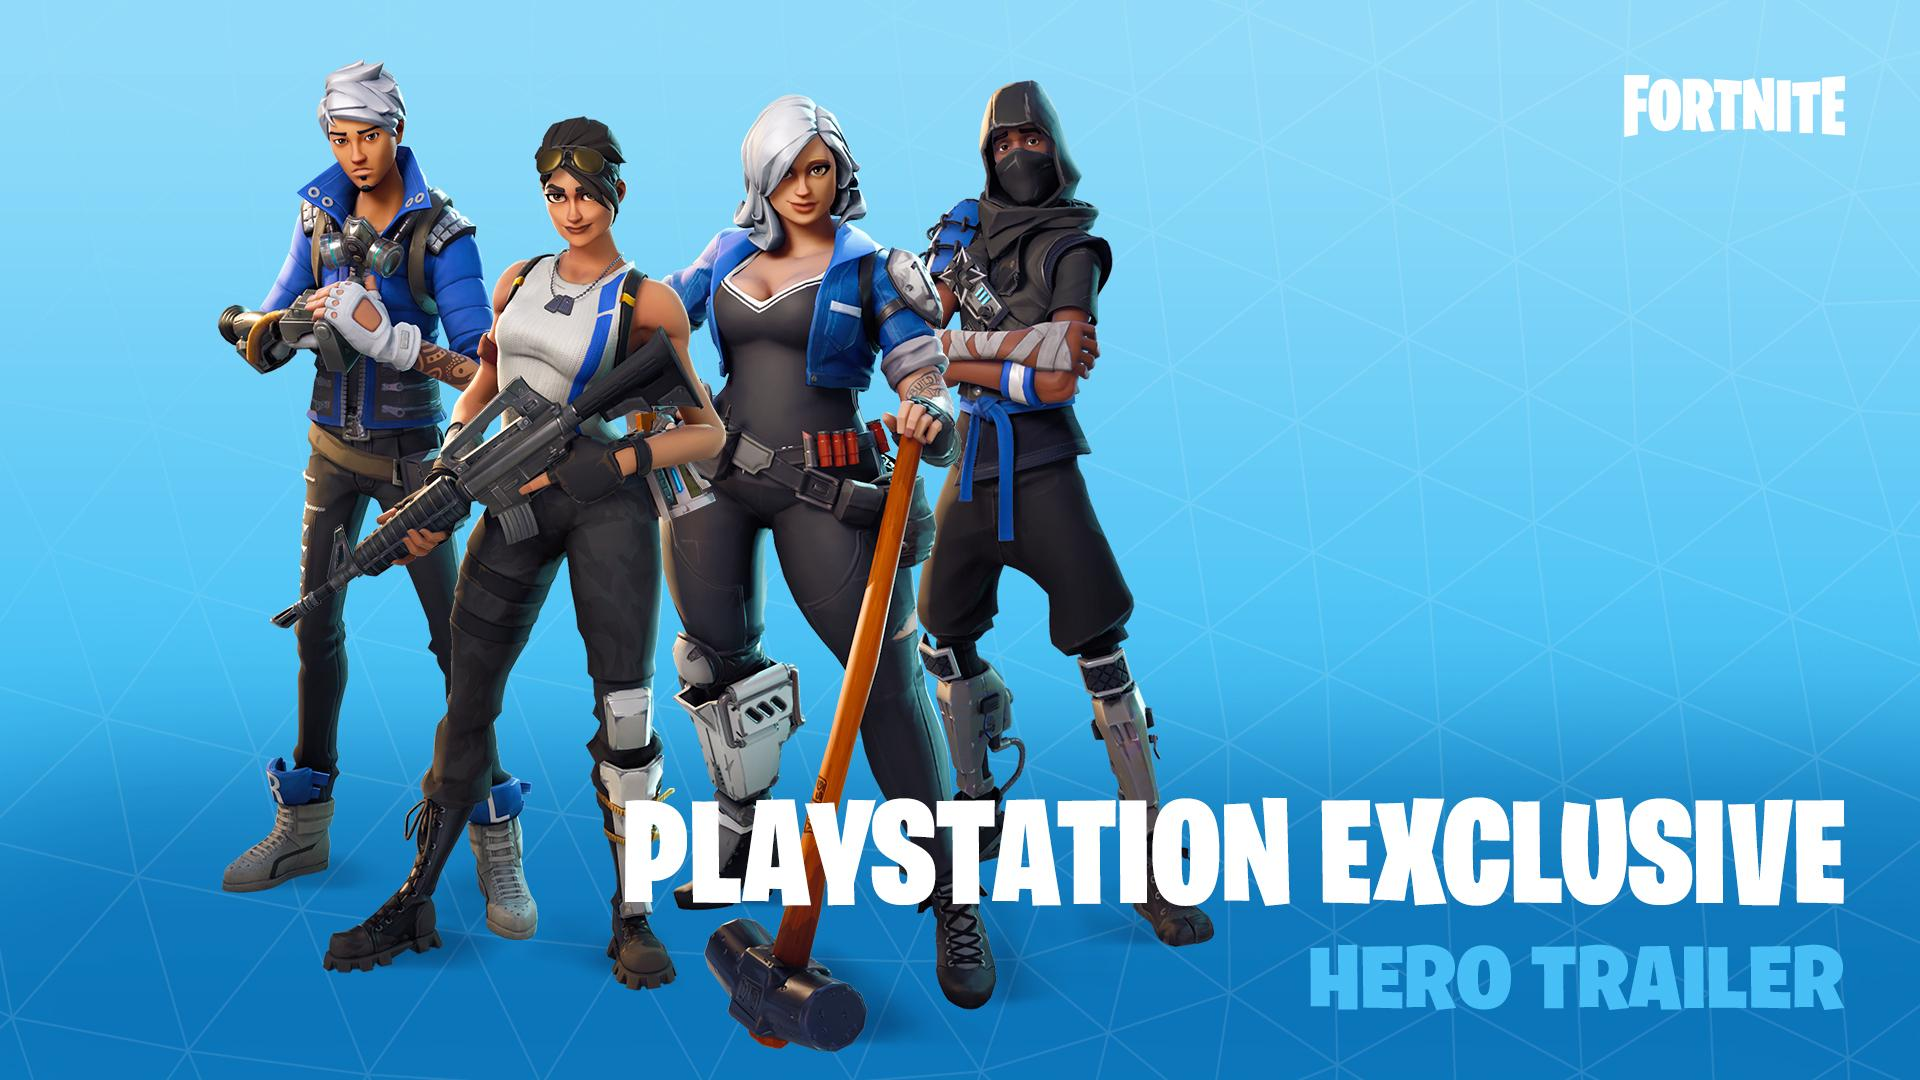 Fortnite Is Here With Exclusive PS4 Heroes – PlayStation.Blog